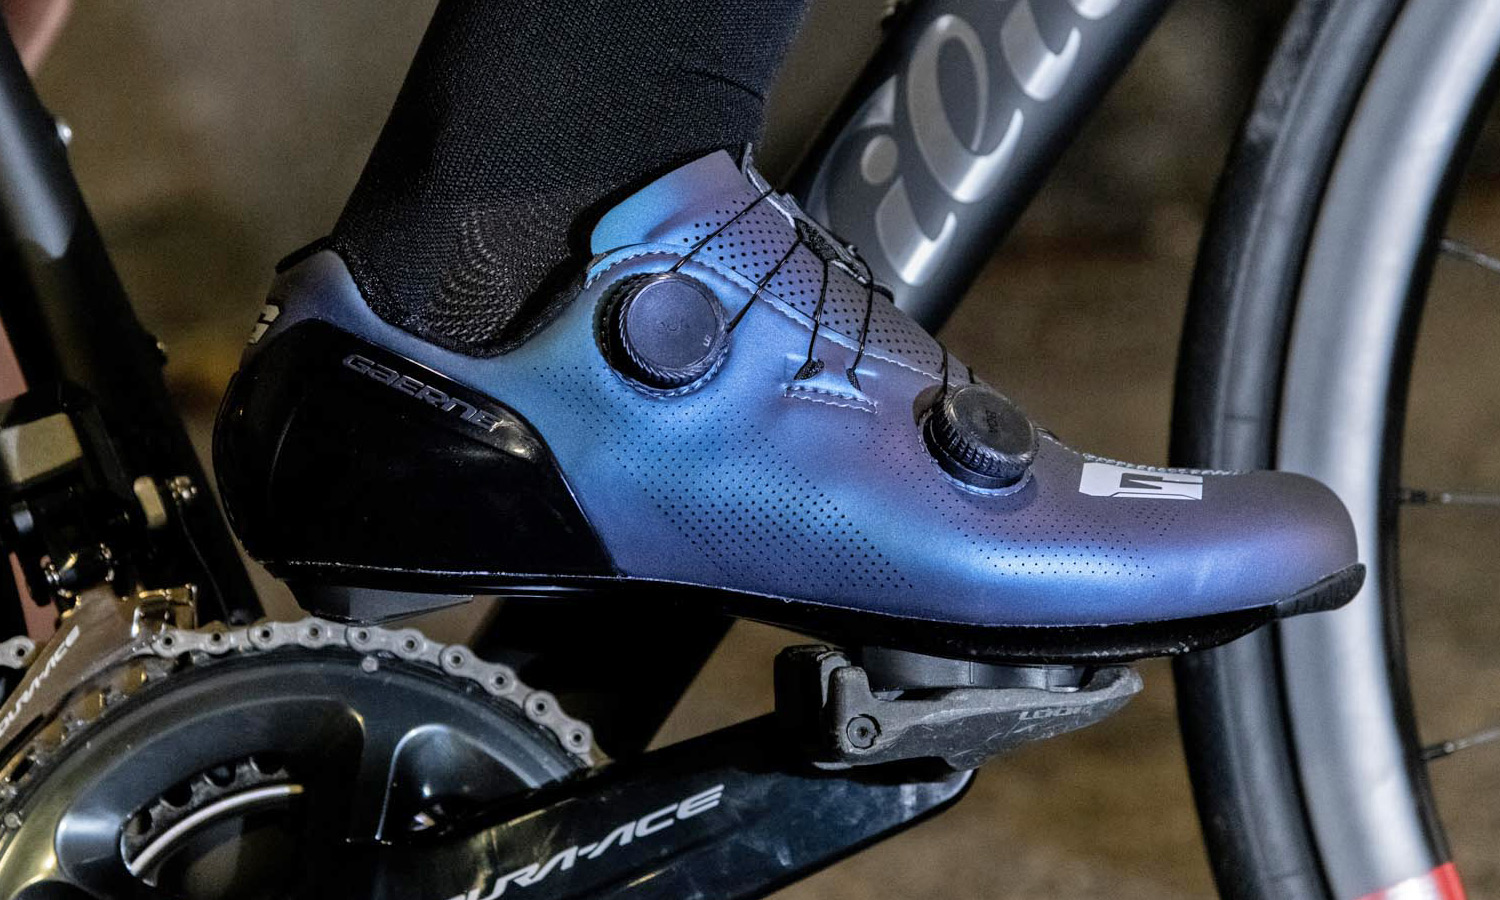 Gaerne G.STL road shoes, top-tier made-in-Italy performance carbon road race bike shoe,shiny purple